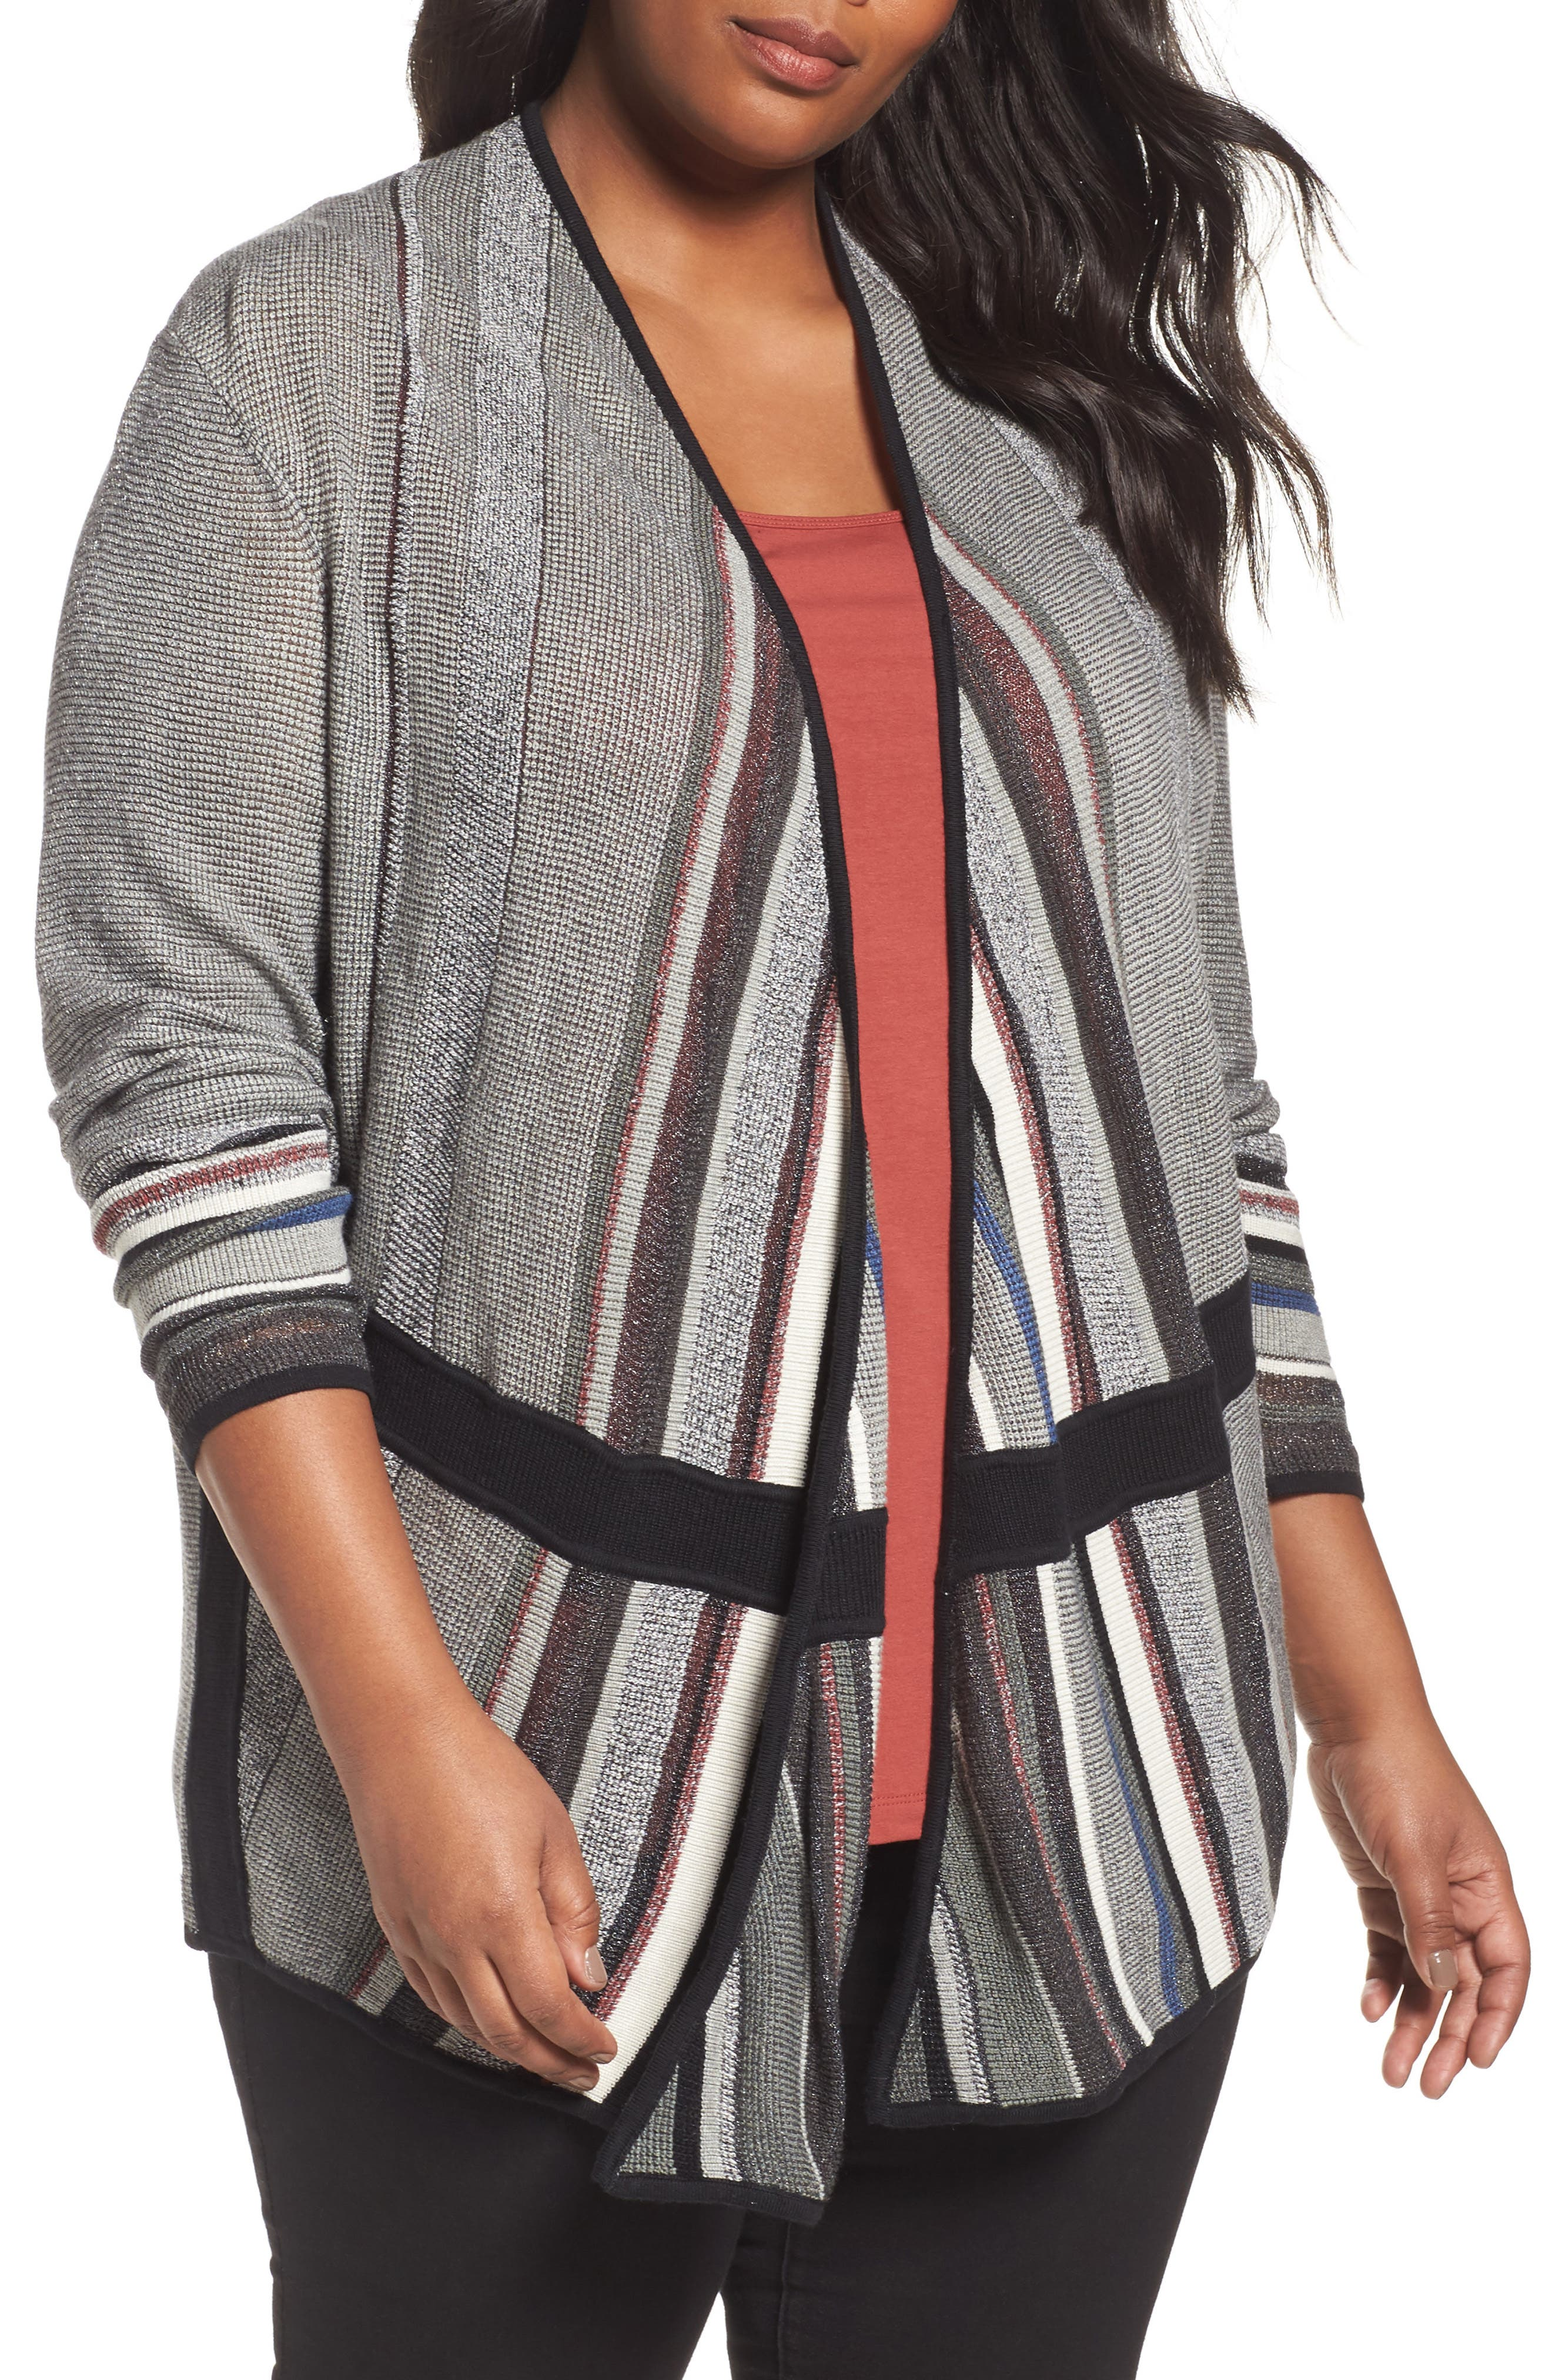 Mirror Image Cardigan,                         Main,                         color, BLACK MULTI